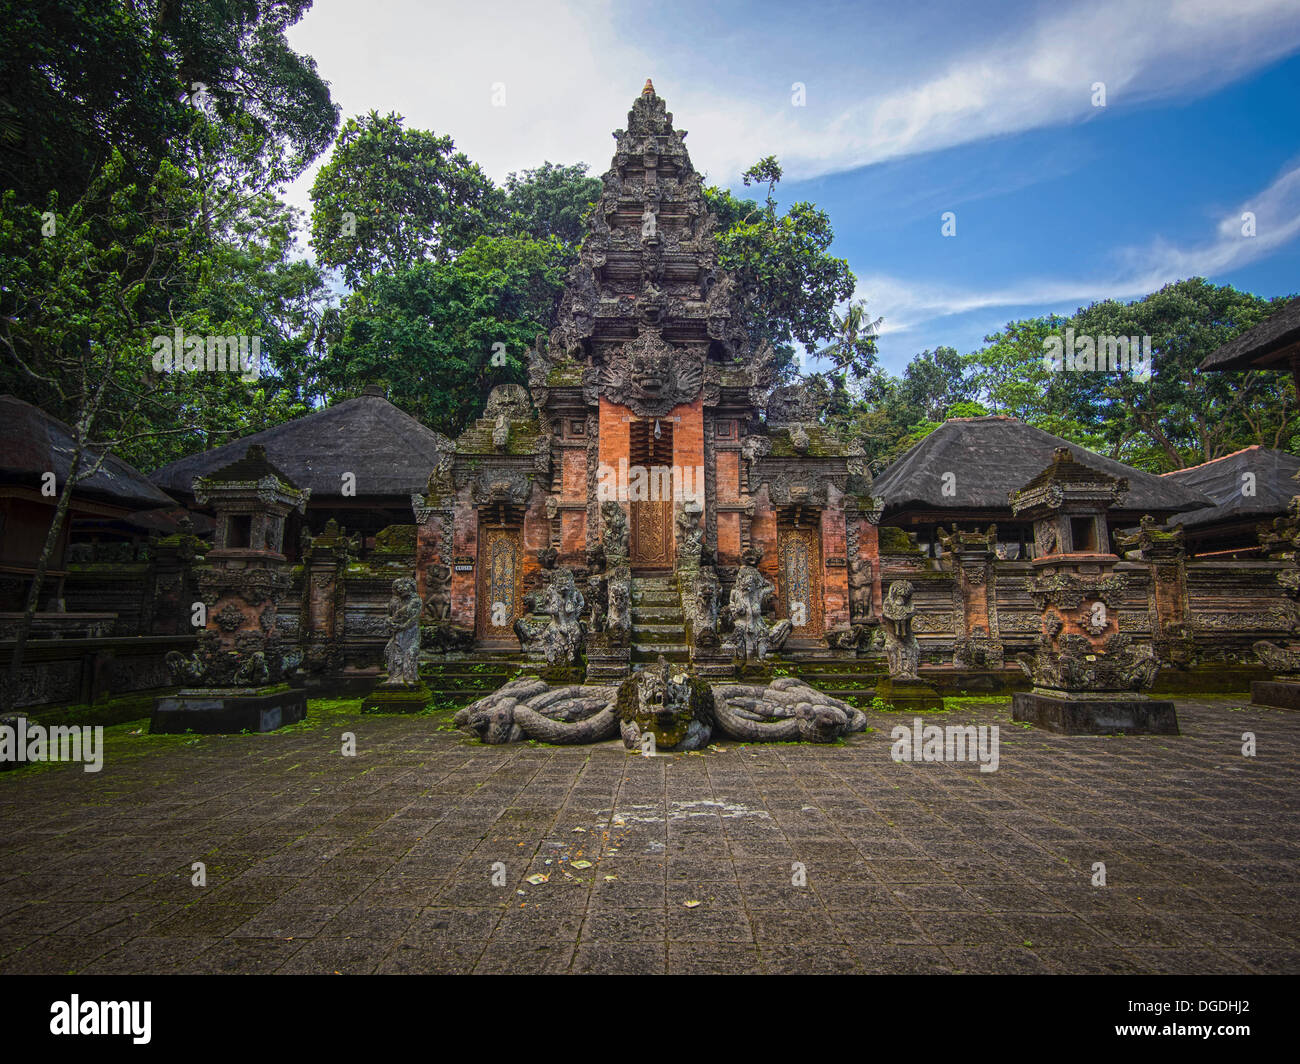 The Padangtegal temple in the Monkey Forest Sanctuary in Ubud, Bali, Indonesia. - Stock Image